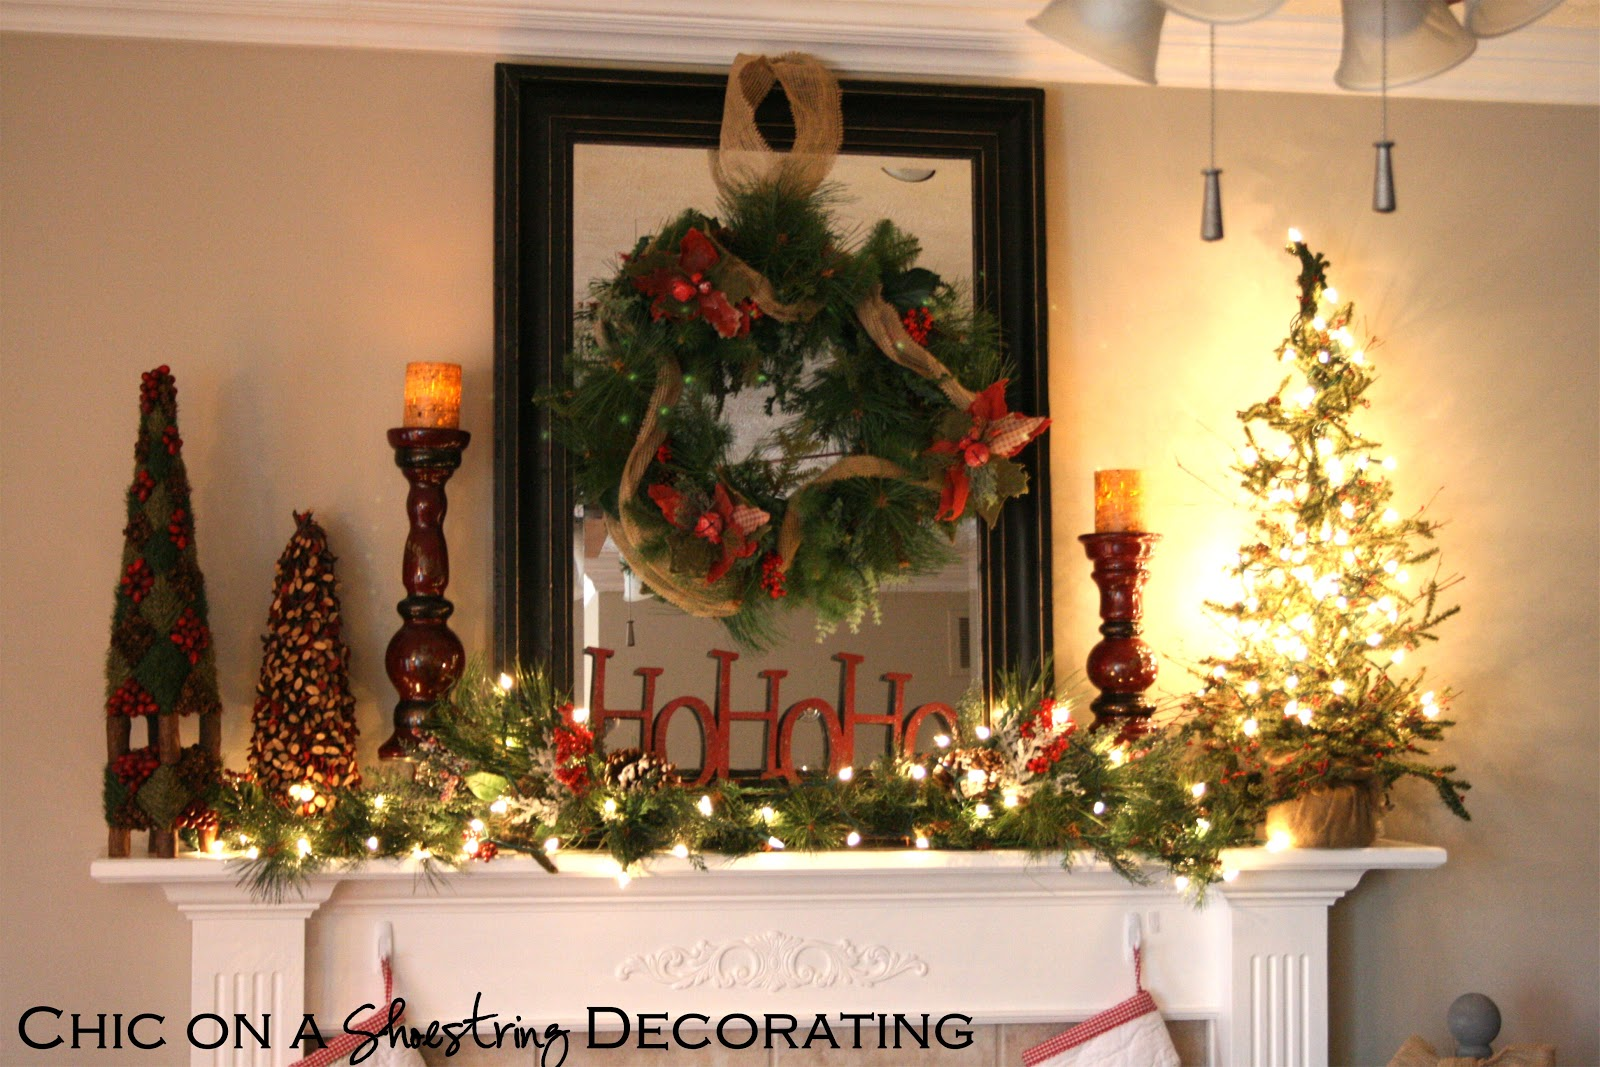 Chic on a shoestring decorating christmas home tour part for Christmas home decorations pictures